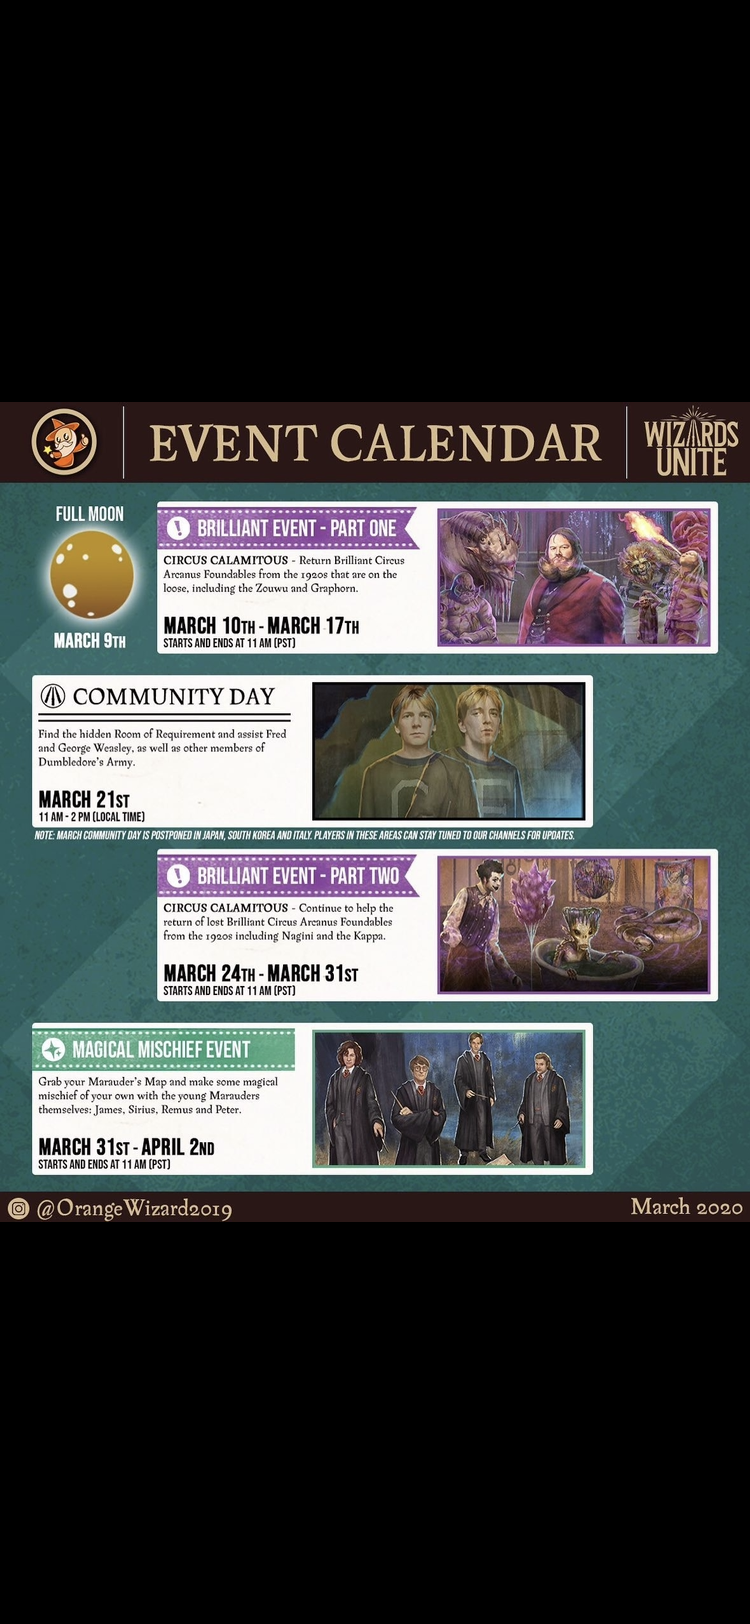 Pin By Marla Montville On Harry Potter Wizards Unite Event Calendar March 9th 10 Things